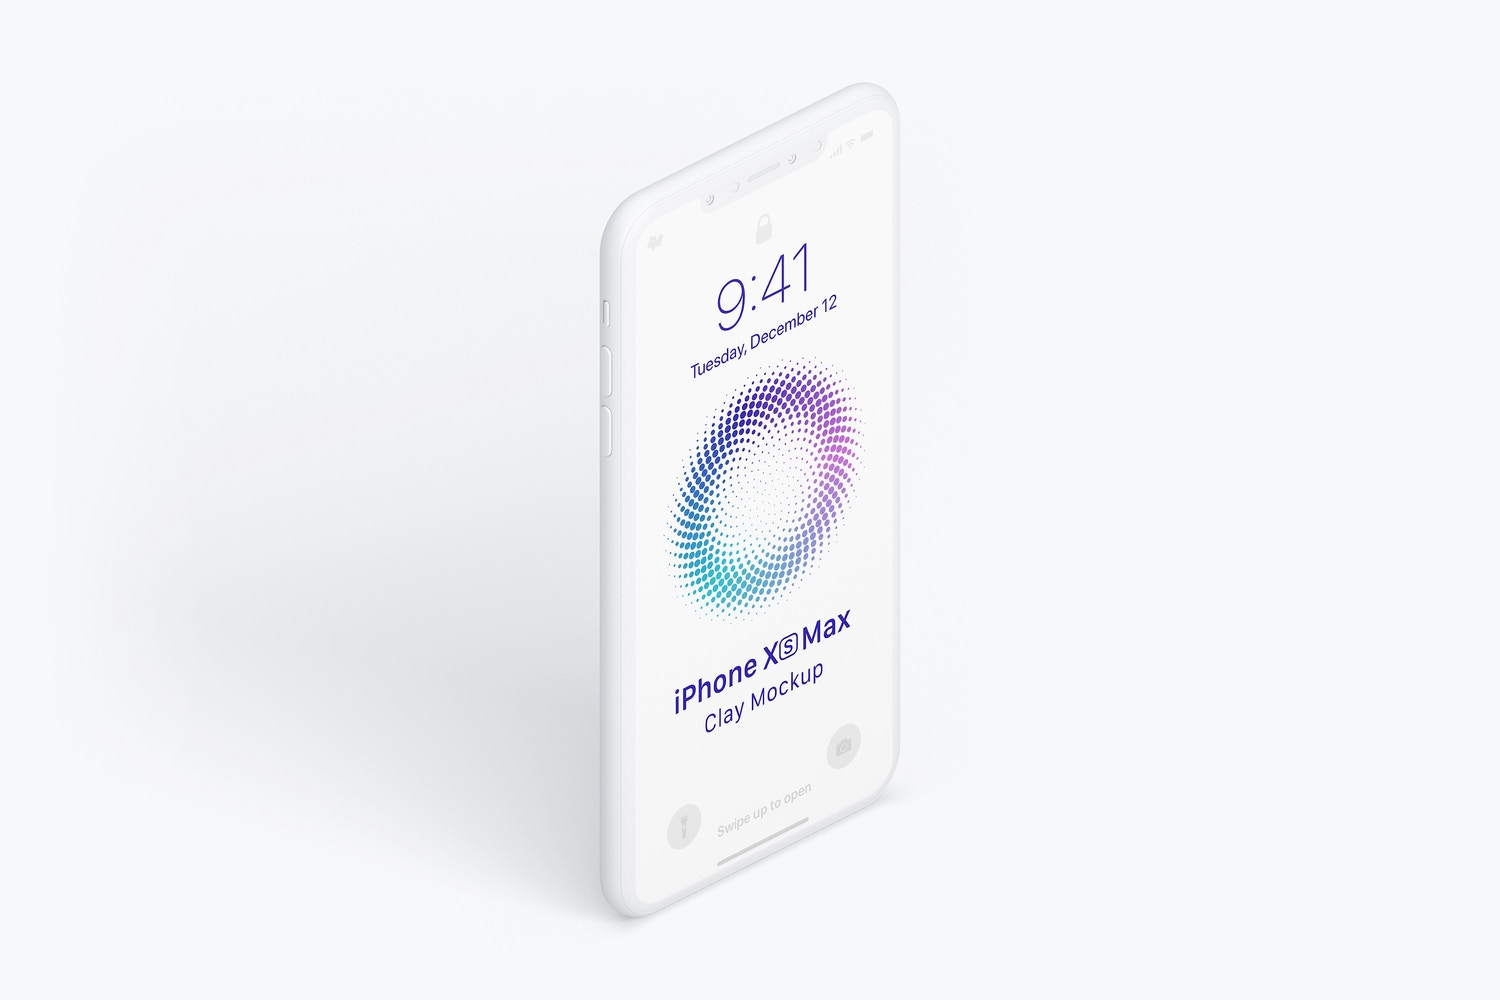 Isometric Clay iPhone XS Max Mockup, Right View 02 by Original Mockups on Original Mockups